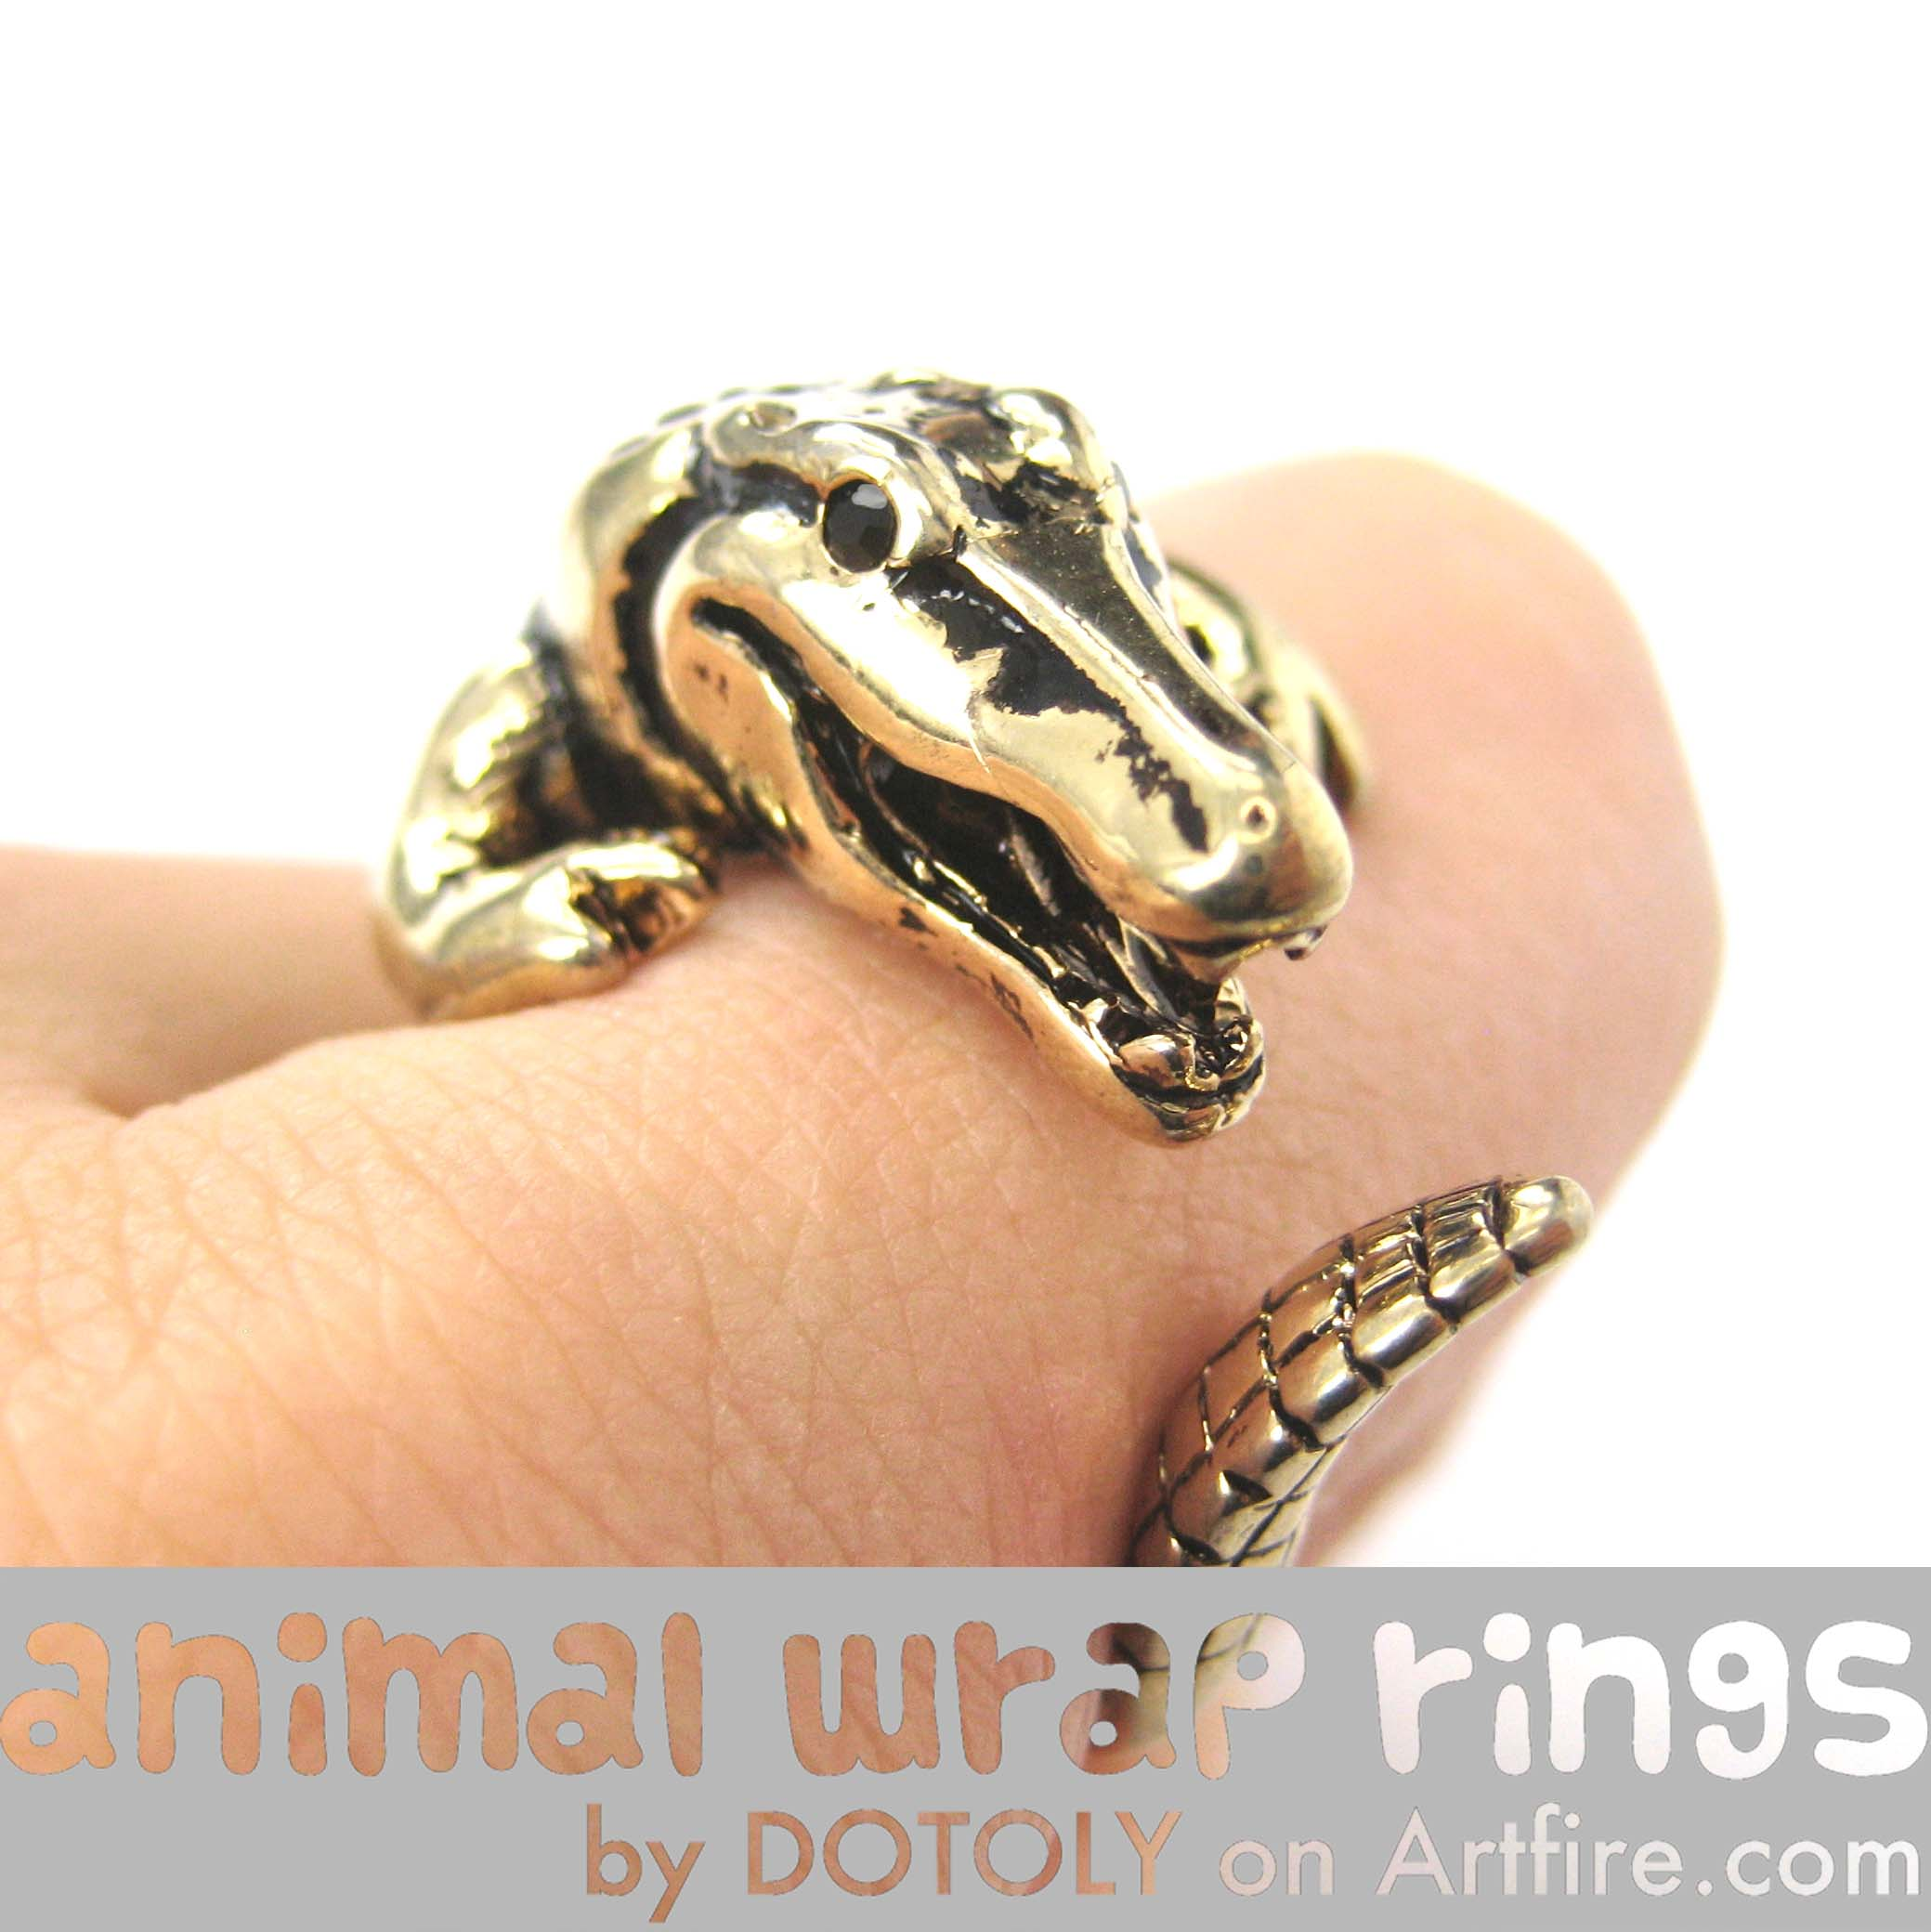 crocodile-alligator-animal-ring-dotoly